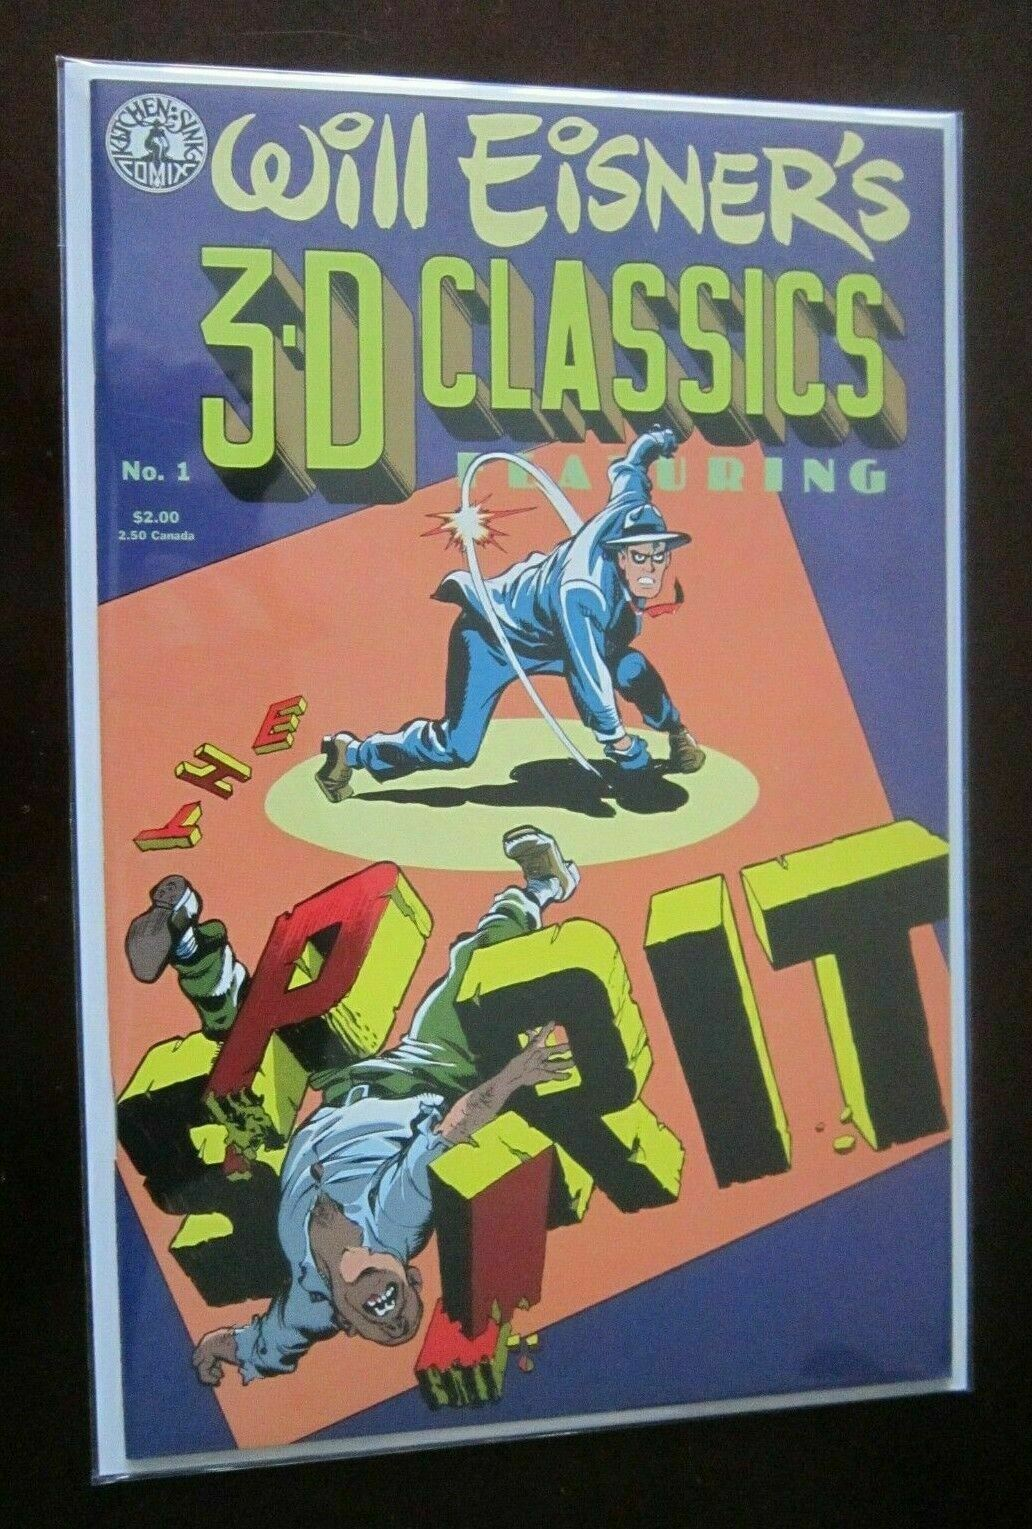 Will Eisner's 3D Classics Featuring The Spirit #1 B no glasses 8.0 VF (1985)